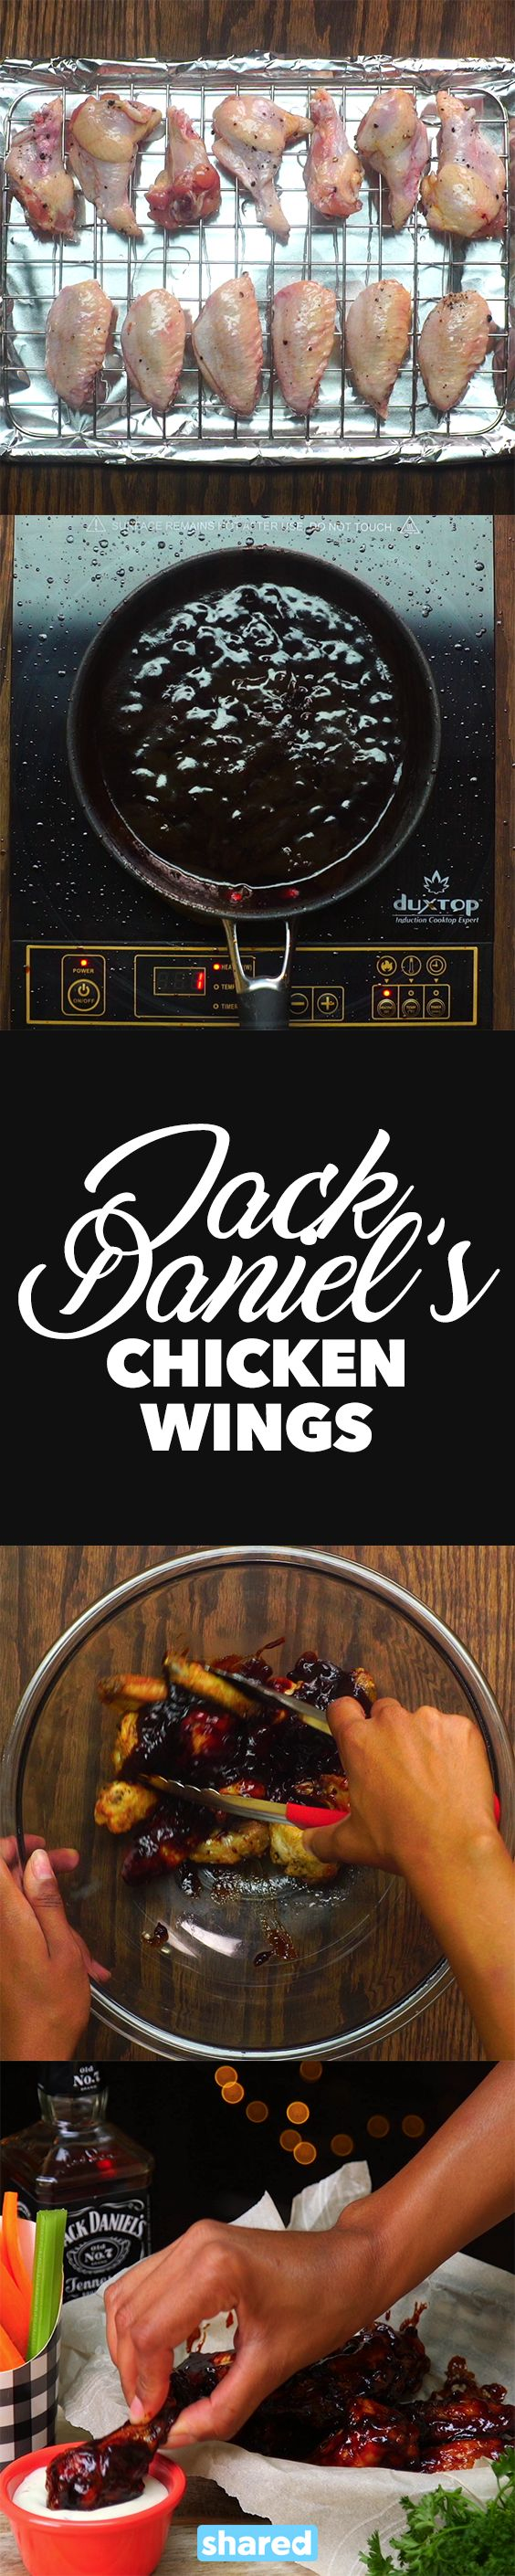 Jack Daniel's Chicken Wings More